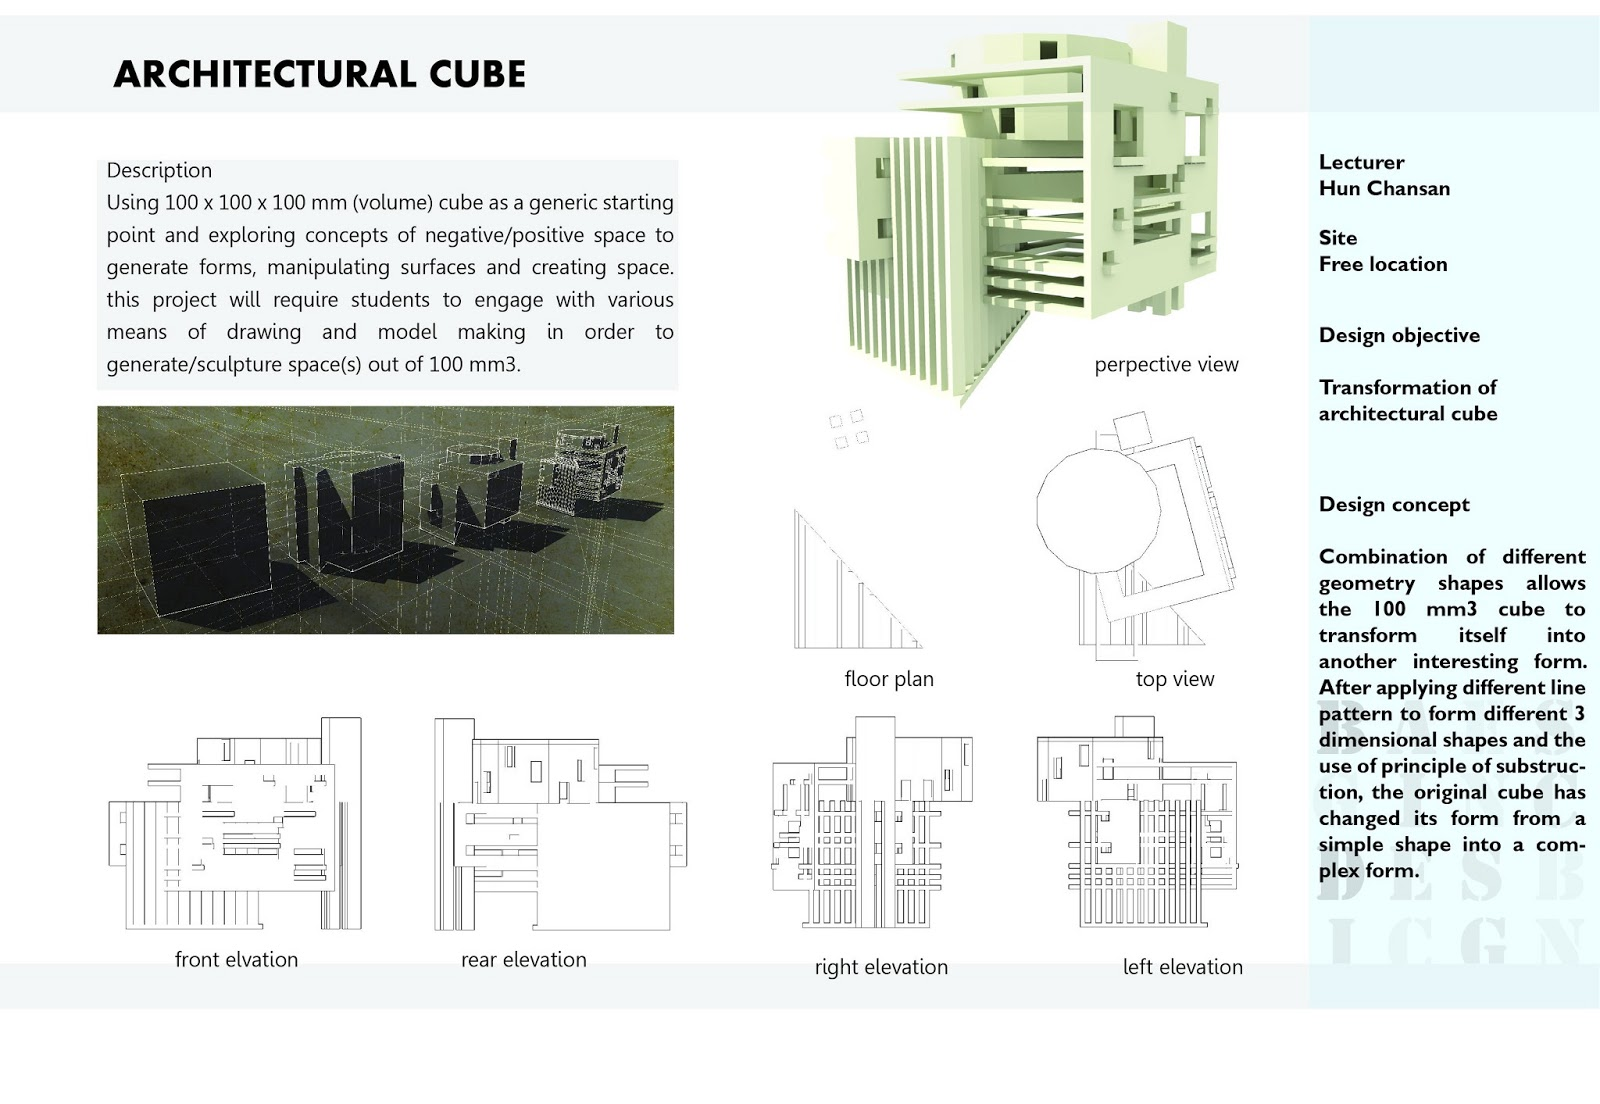 architectural cube transformation concept design architecture project